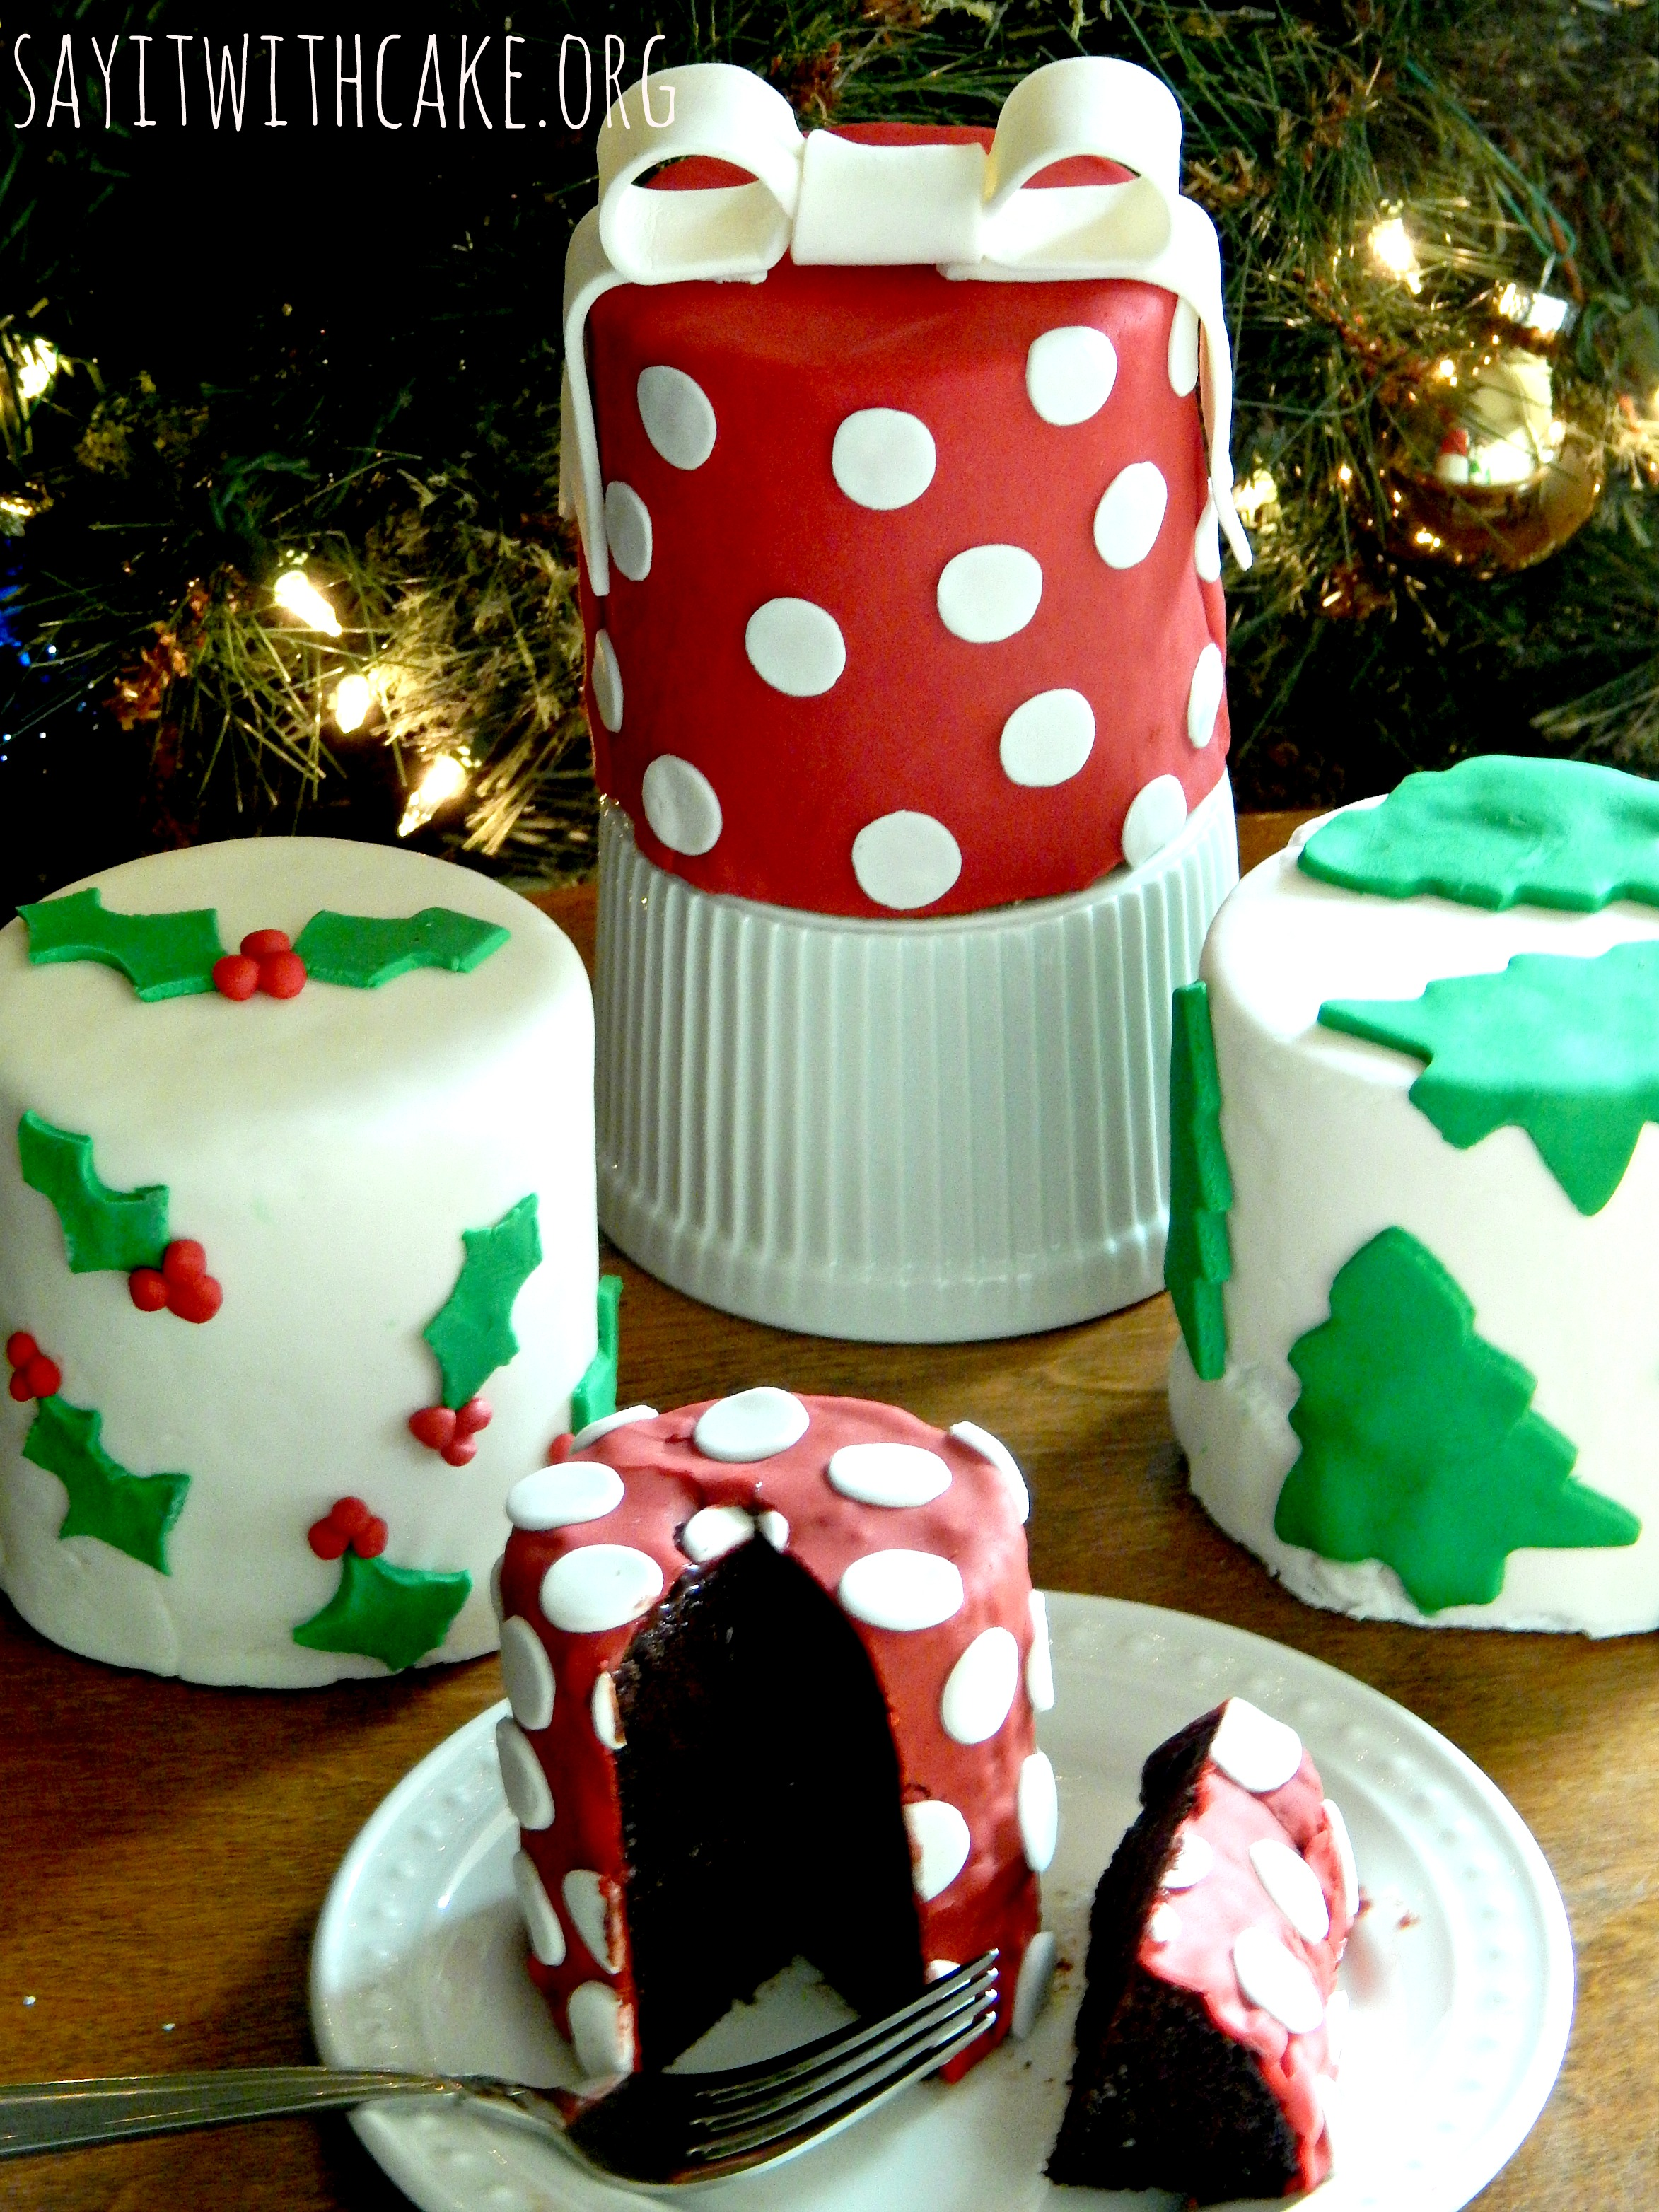 Keep Reading And I Will Show You How To Make These Mini Cakes Step By Step